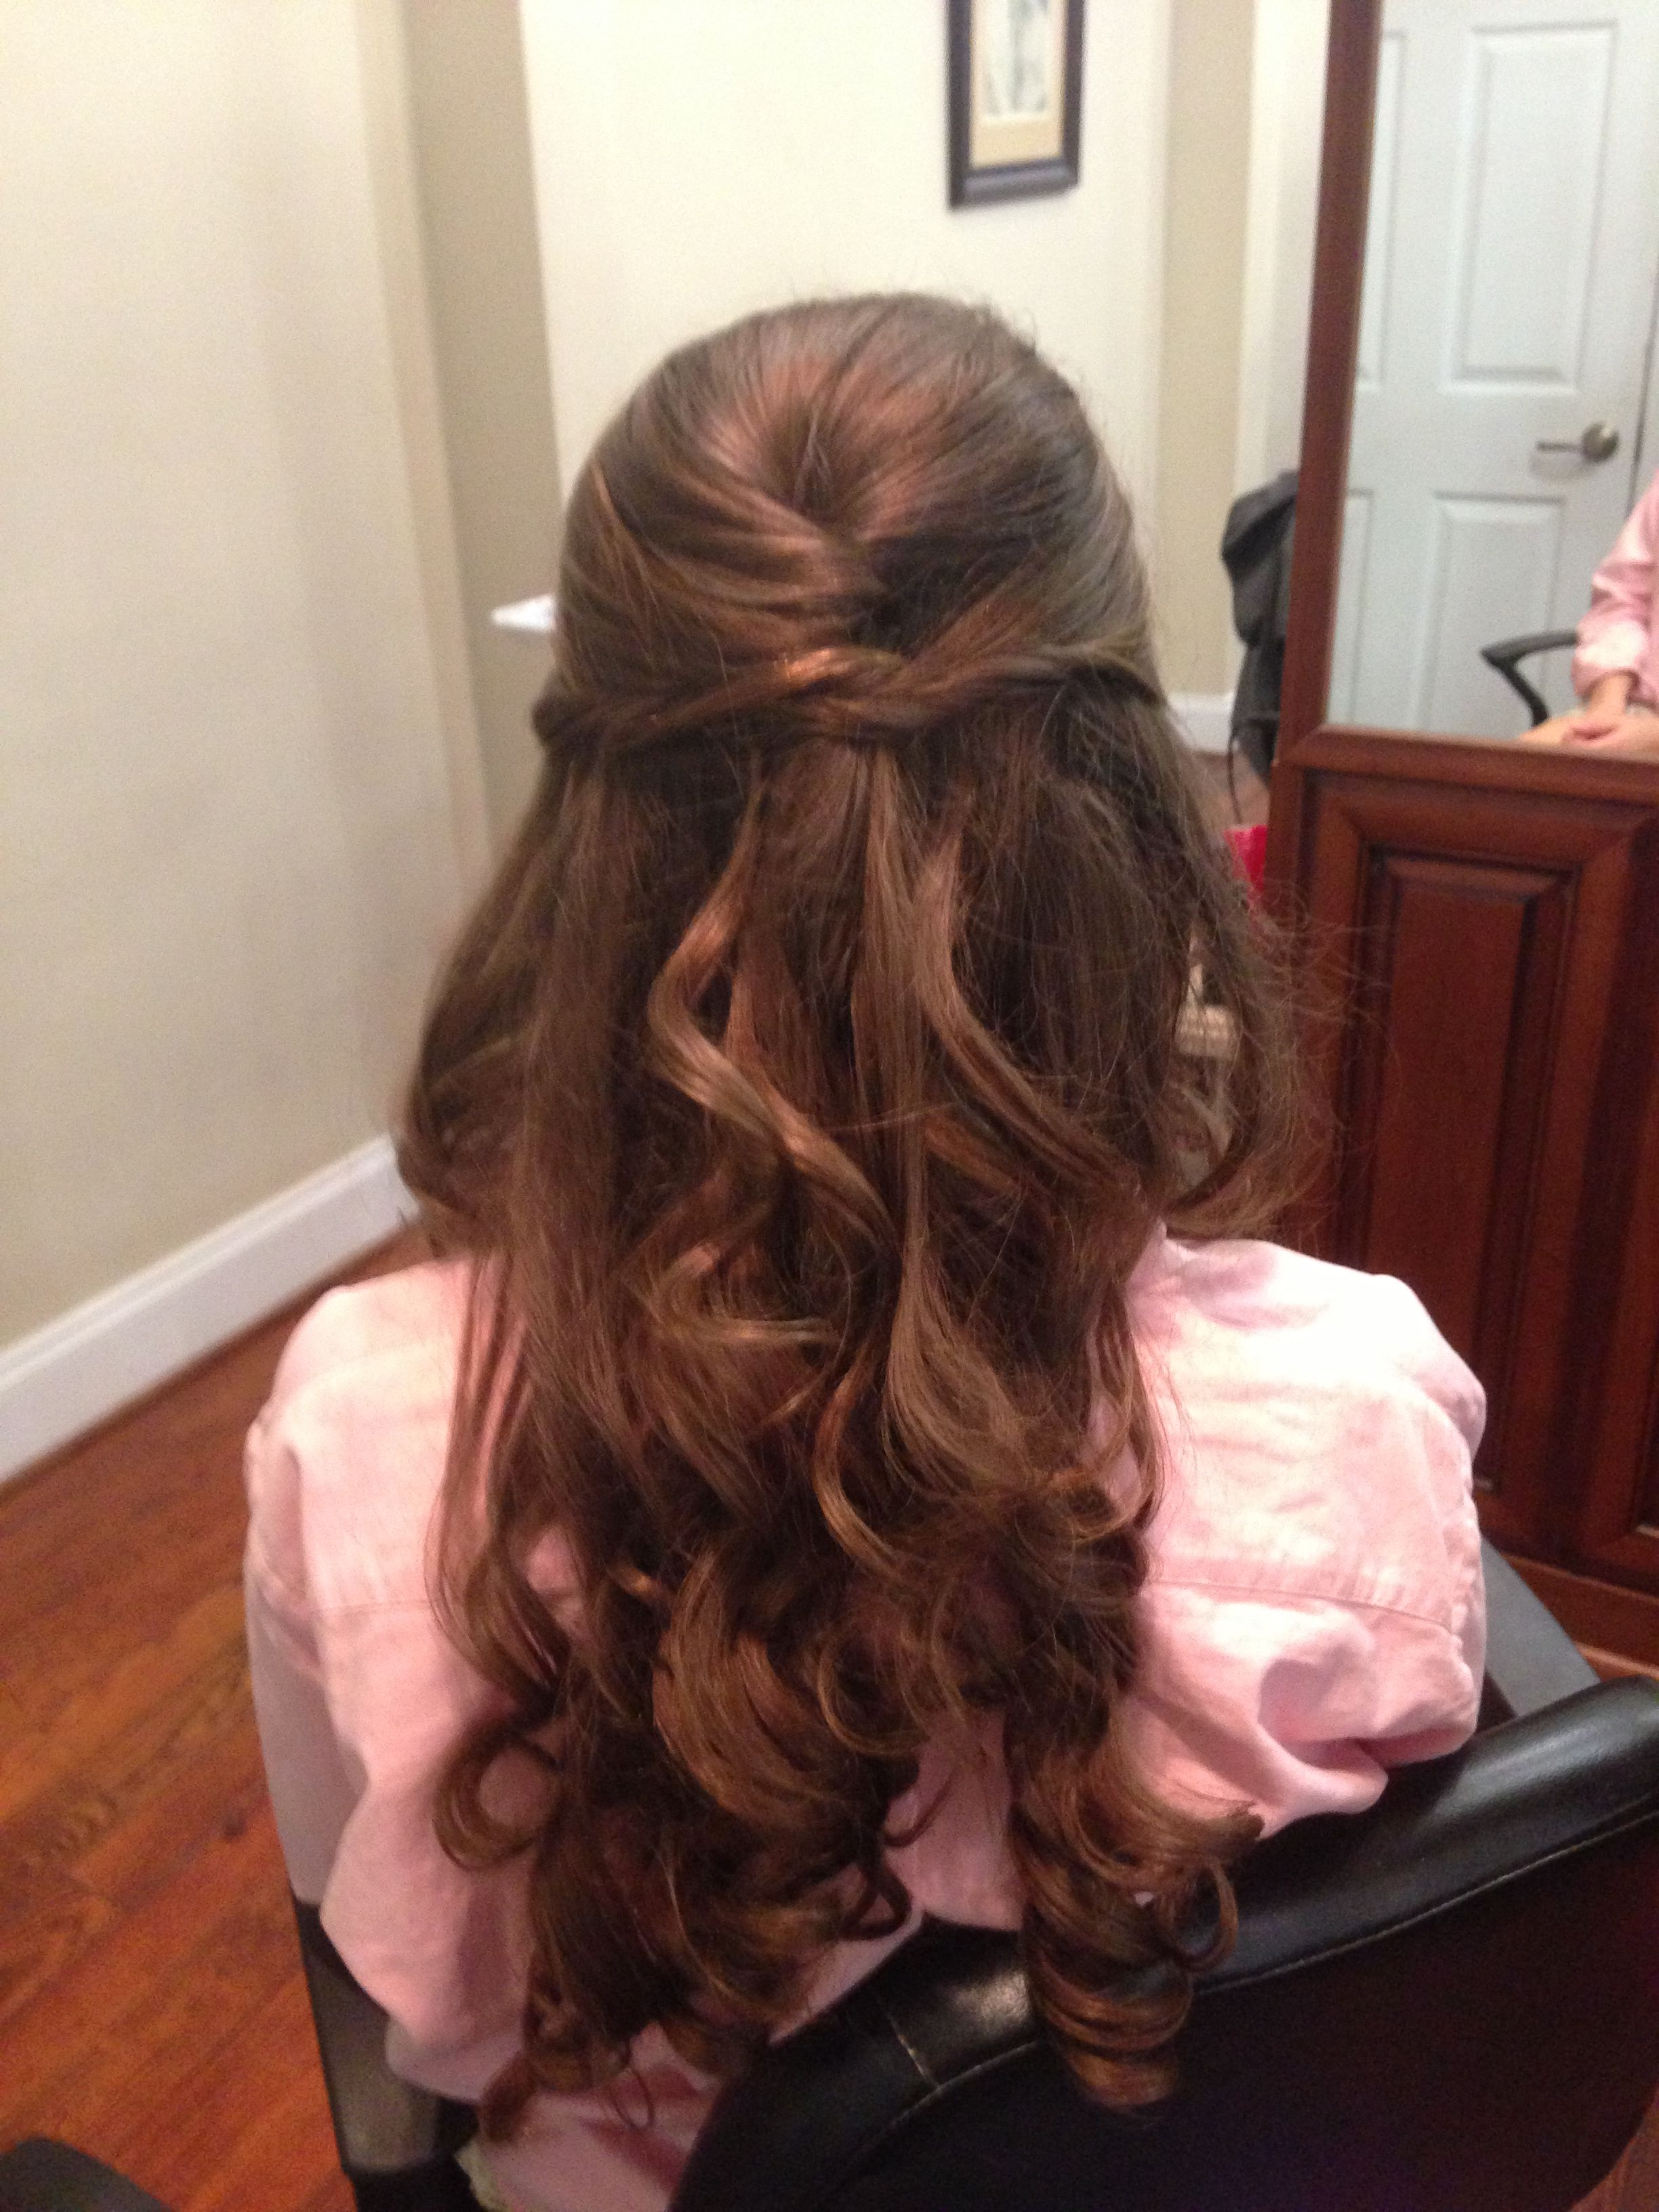 Half up half down prom hair Brushing Pinterest